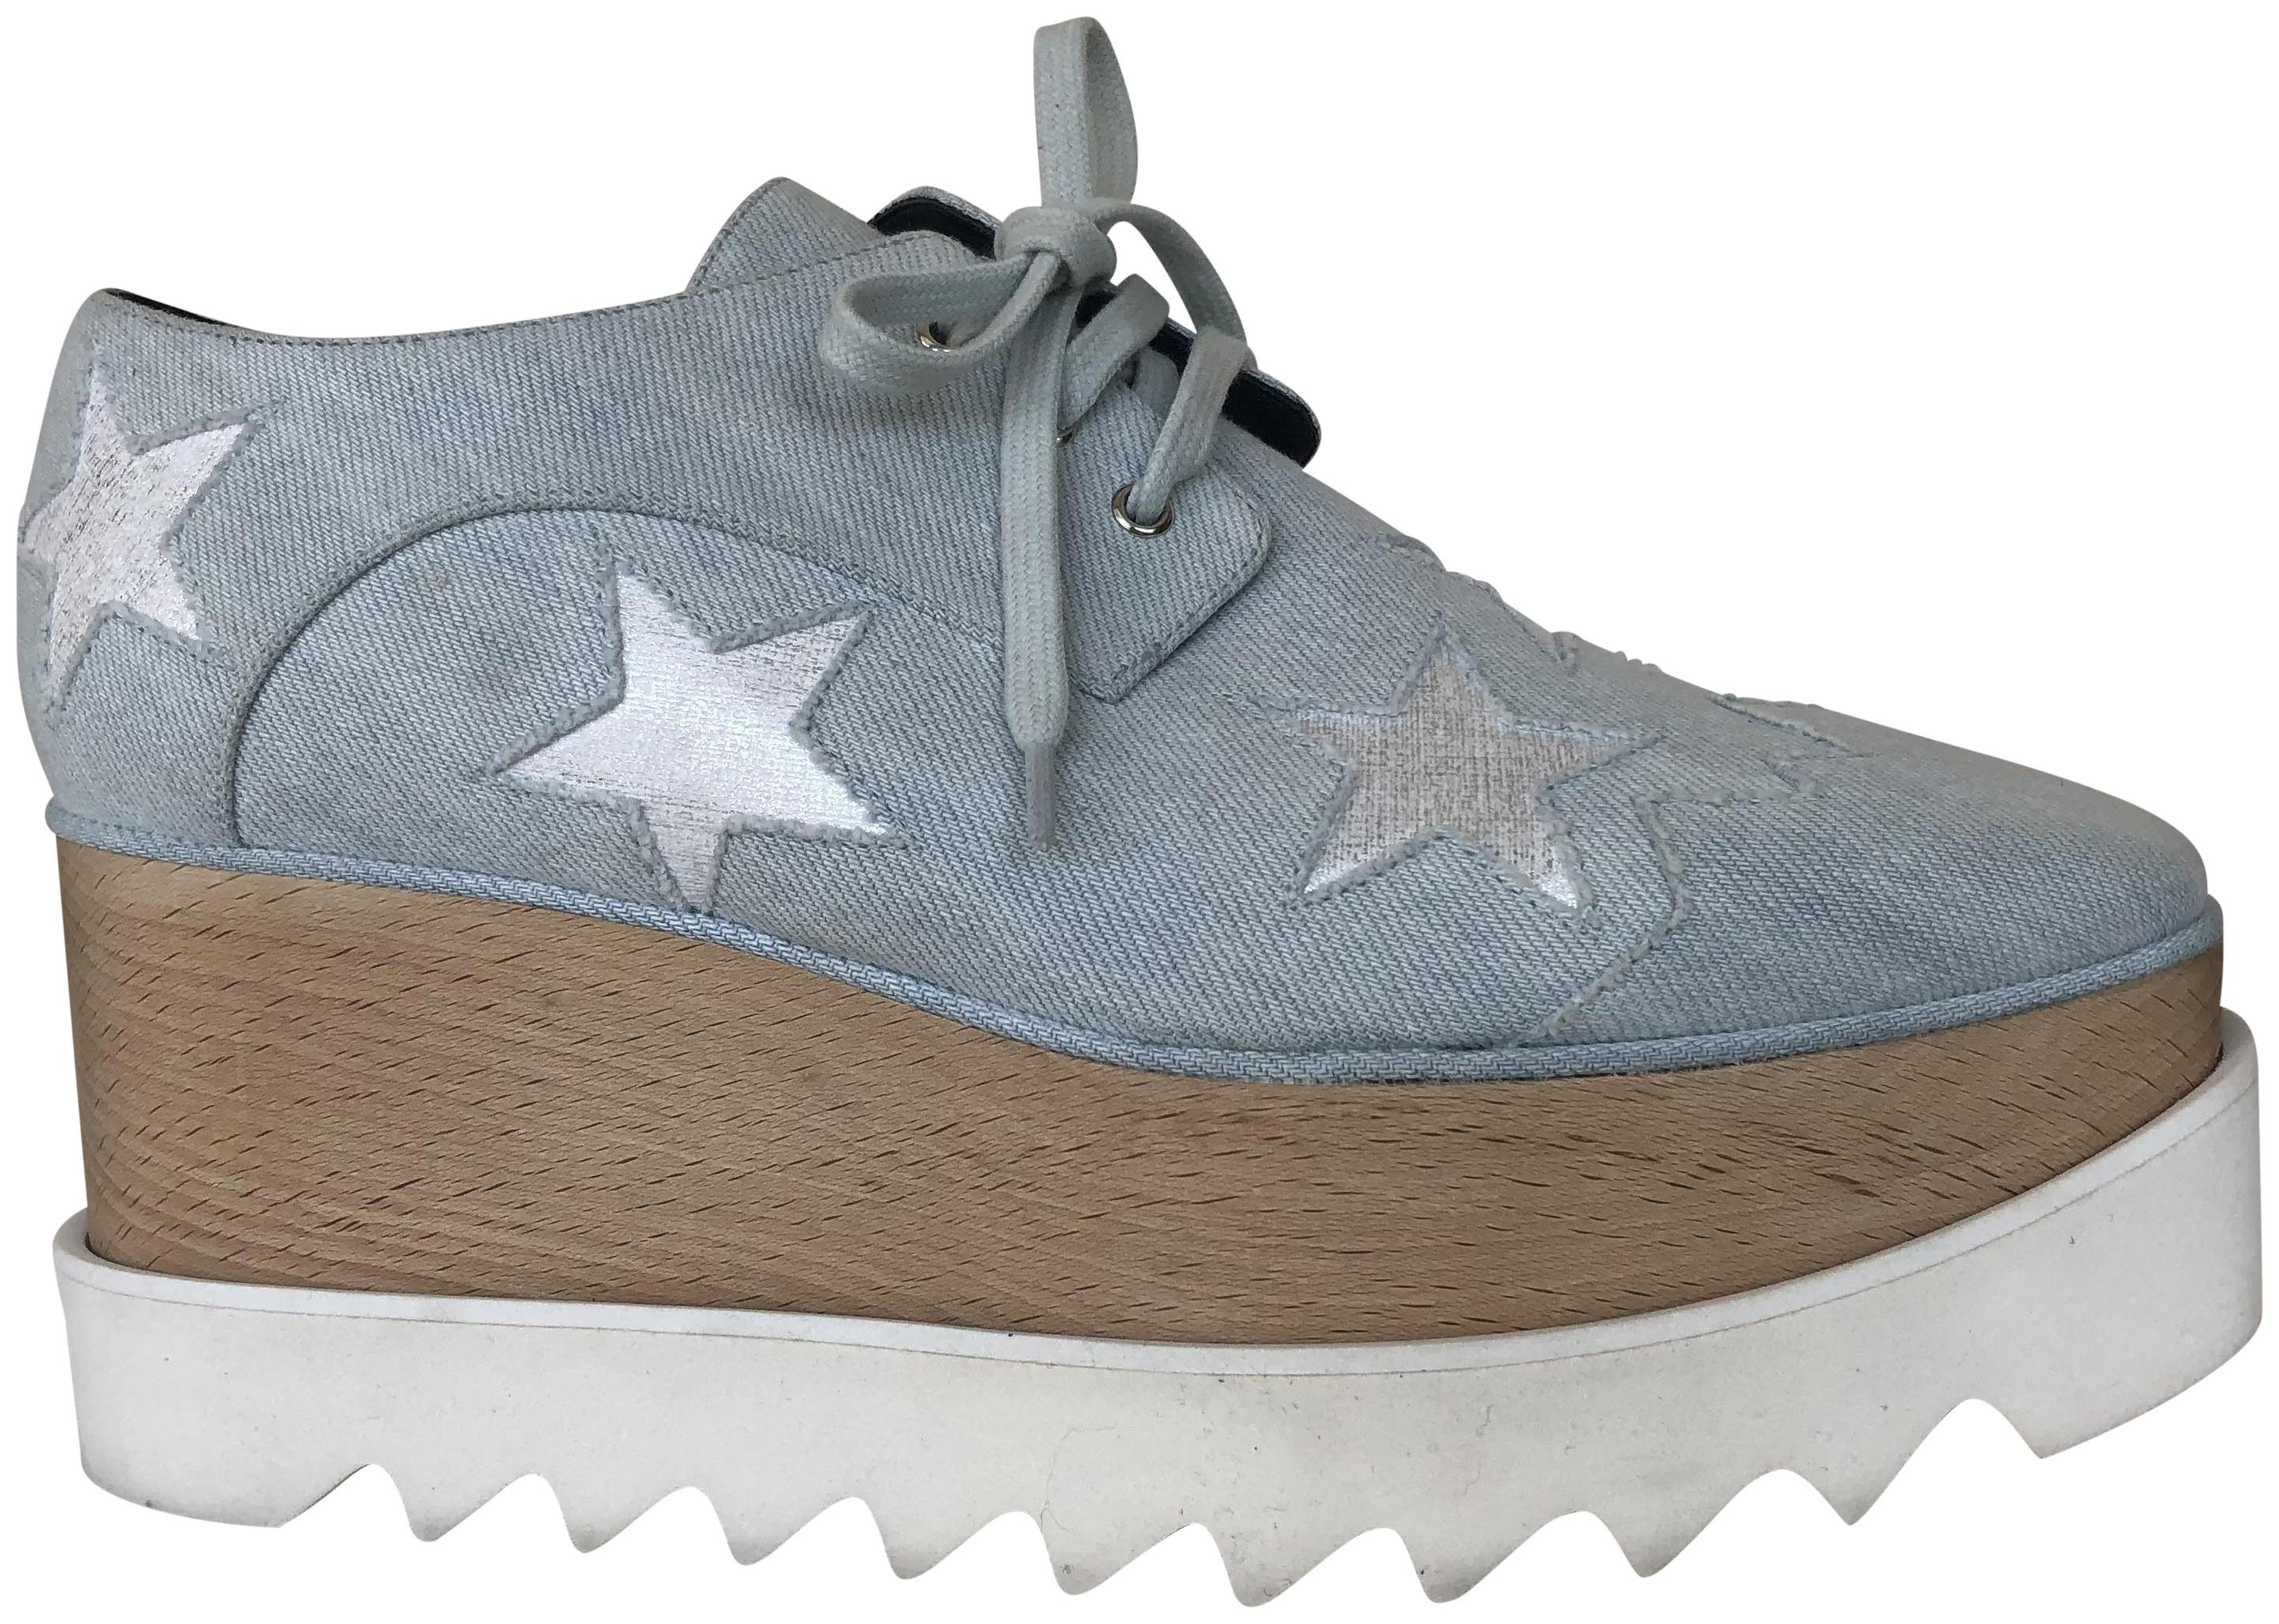 Stella McCartney White/Blue Elyse Oxford Sneakers Platforms Size EU 37 (Approx. US 7) Regular (M, B)